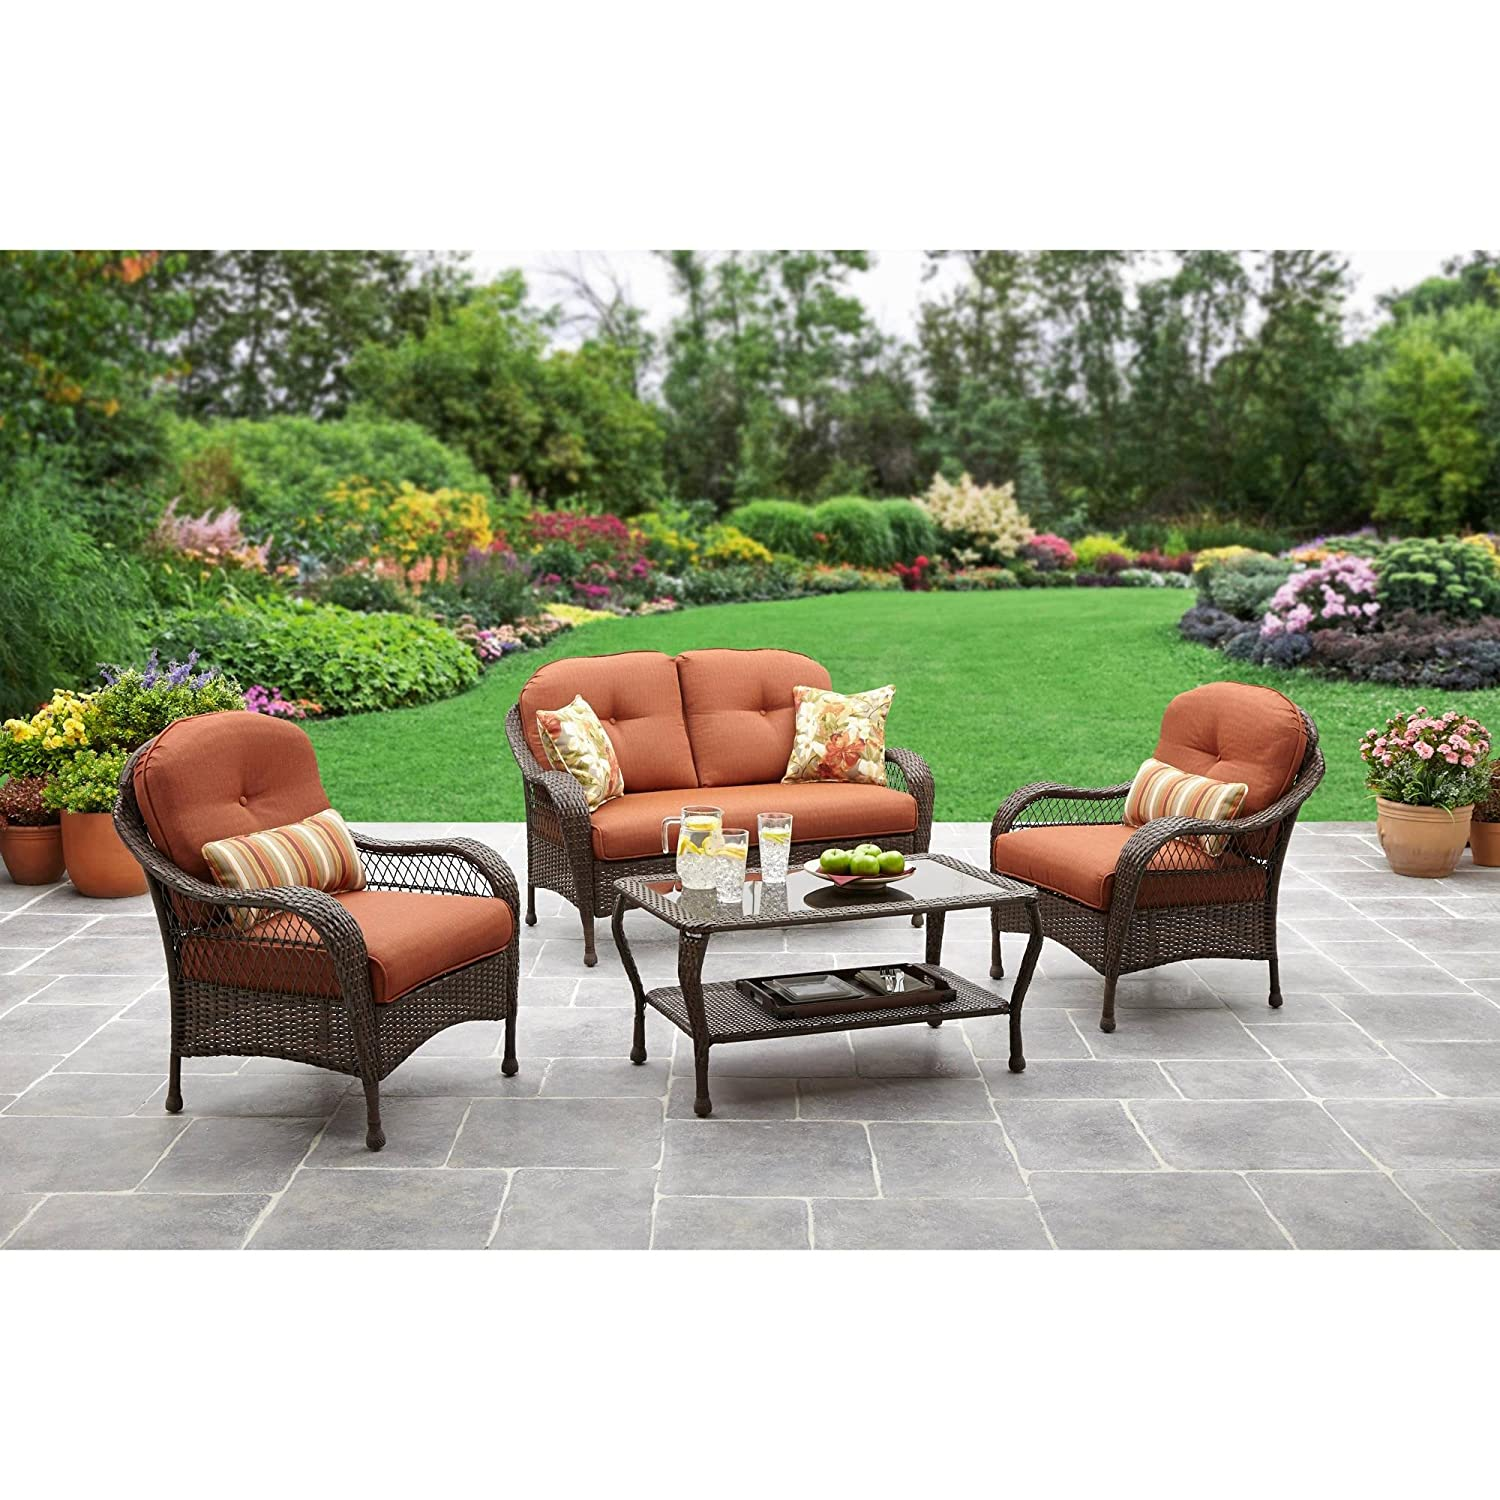 Amazon com patio all weather outdoor furniture set that seats 4 comfortably for enjoying campfires in the back yard or around the pool or deck